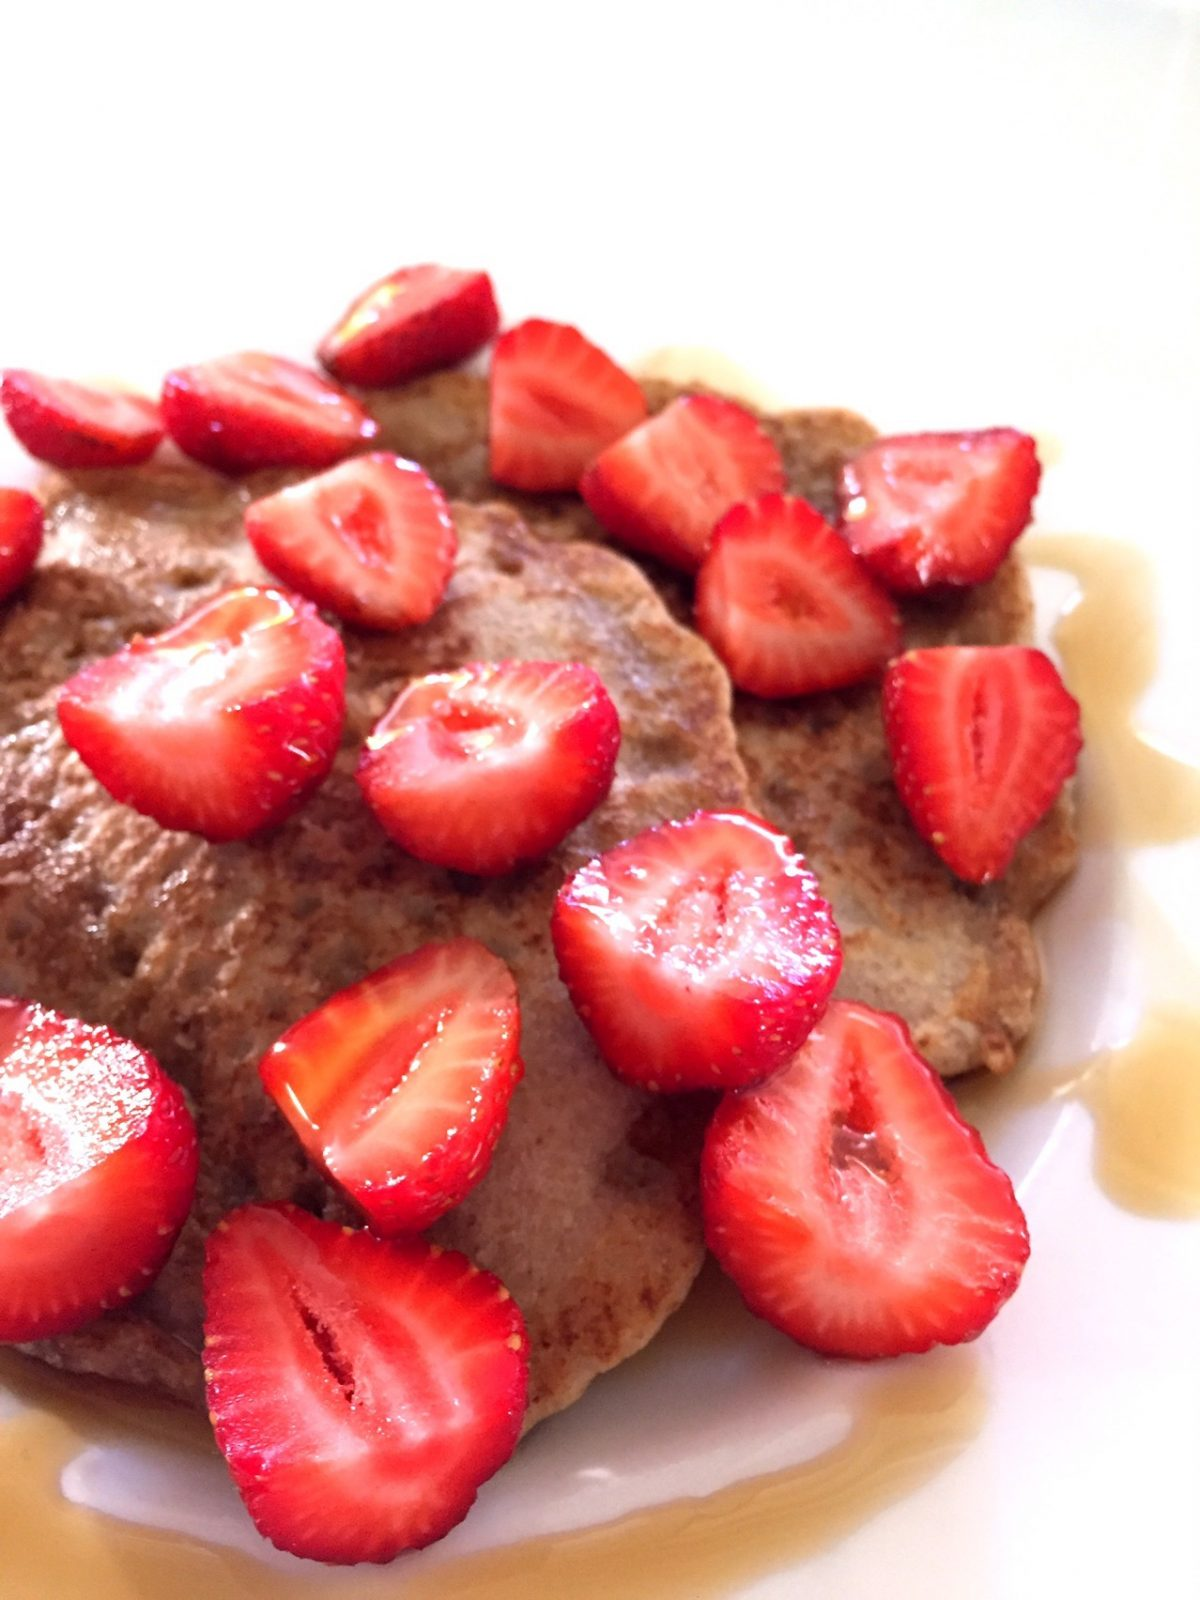 Simple Sweet Buckwheat Pancakes